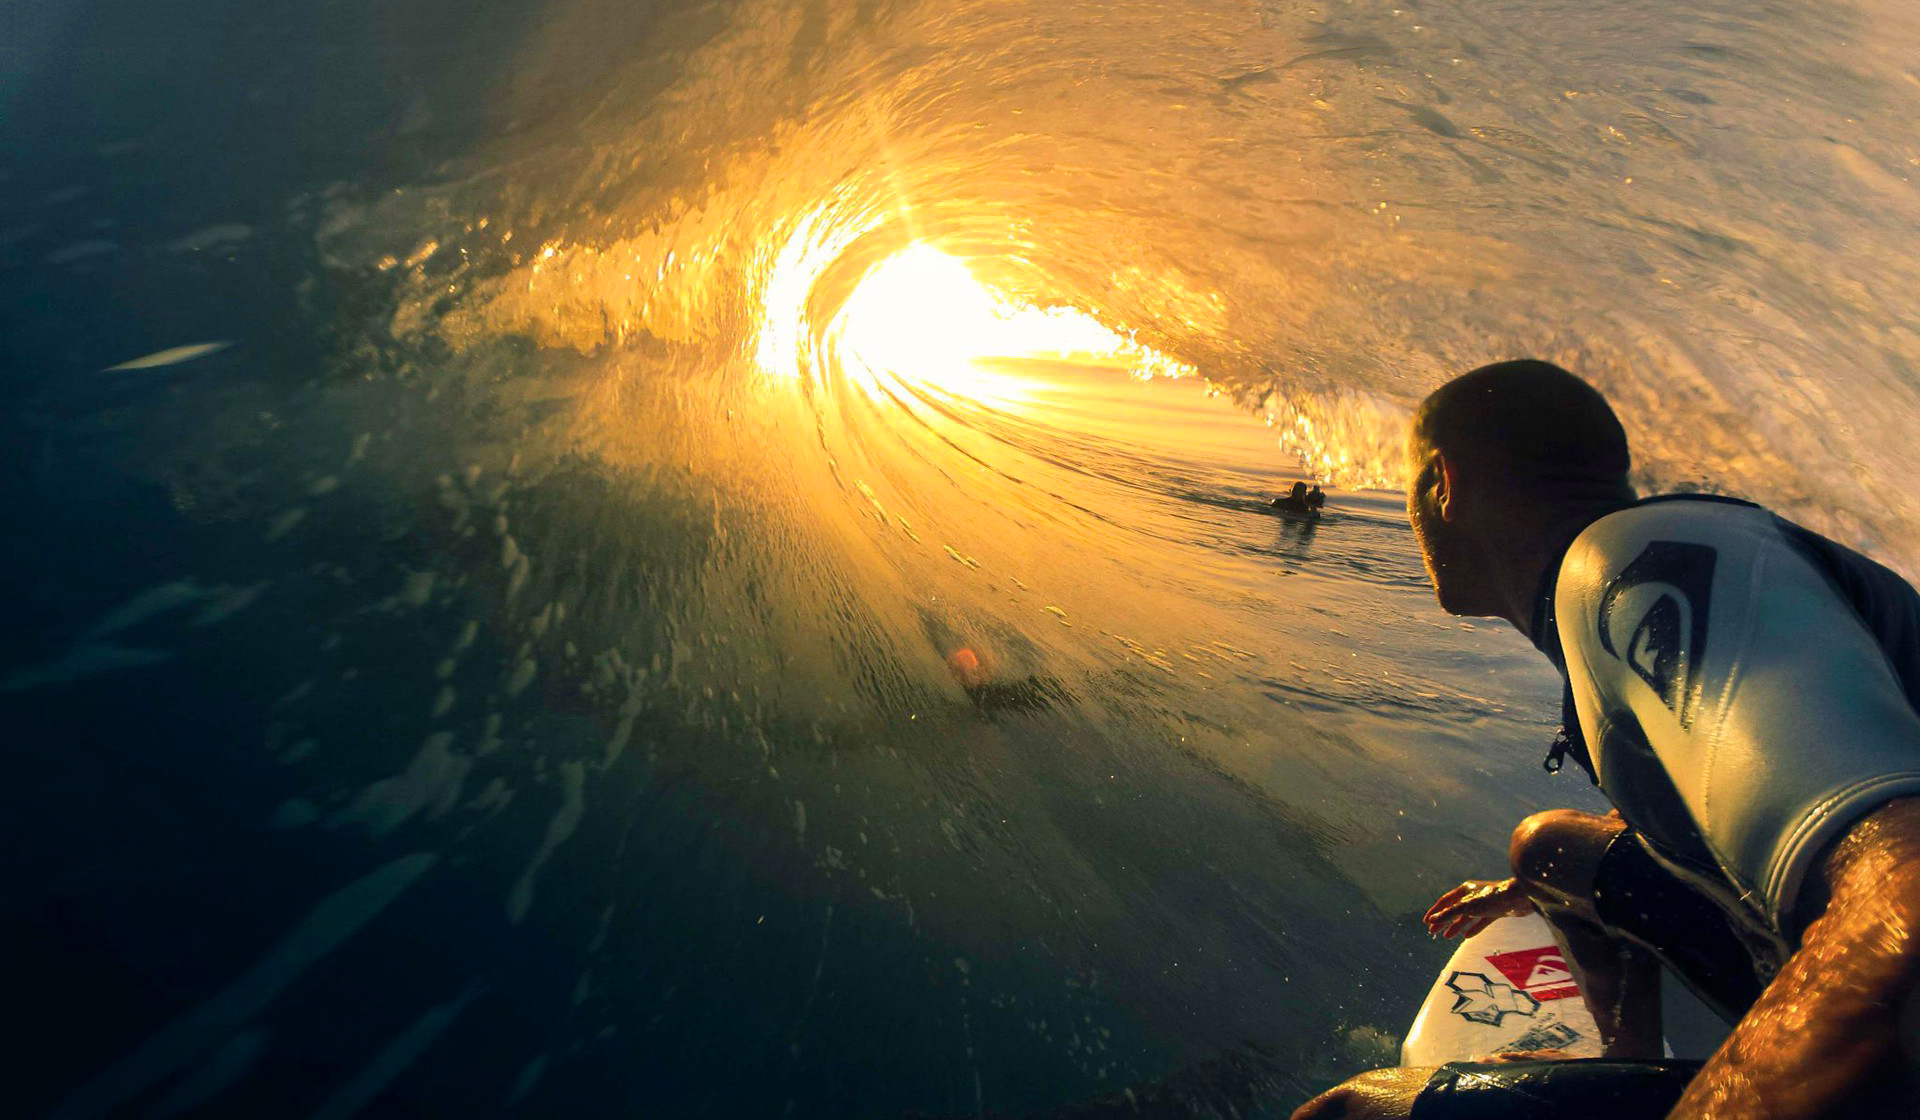 surfing-wallpaper-widescreen-qugbp